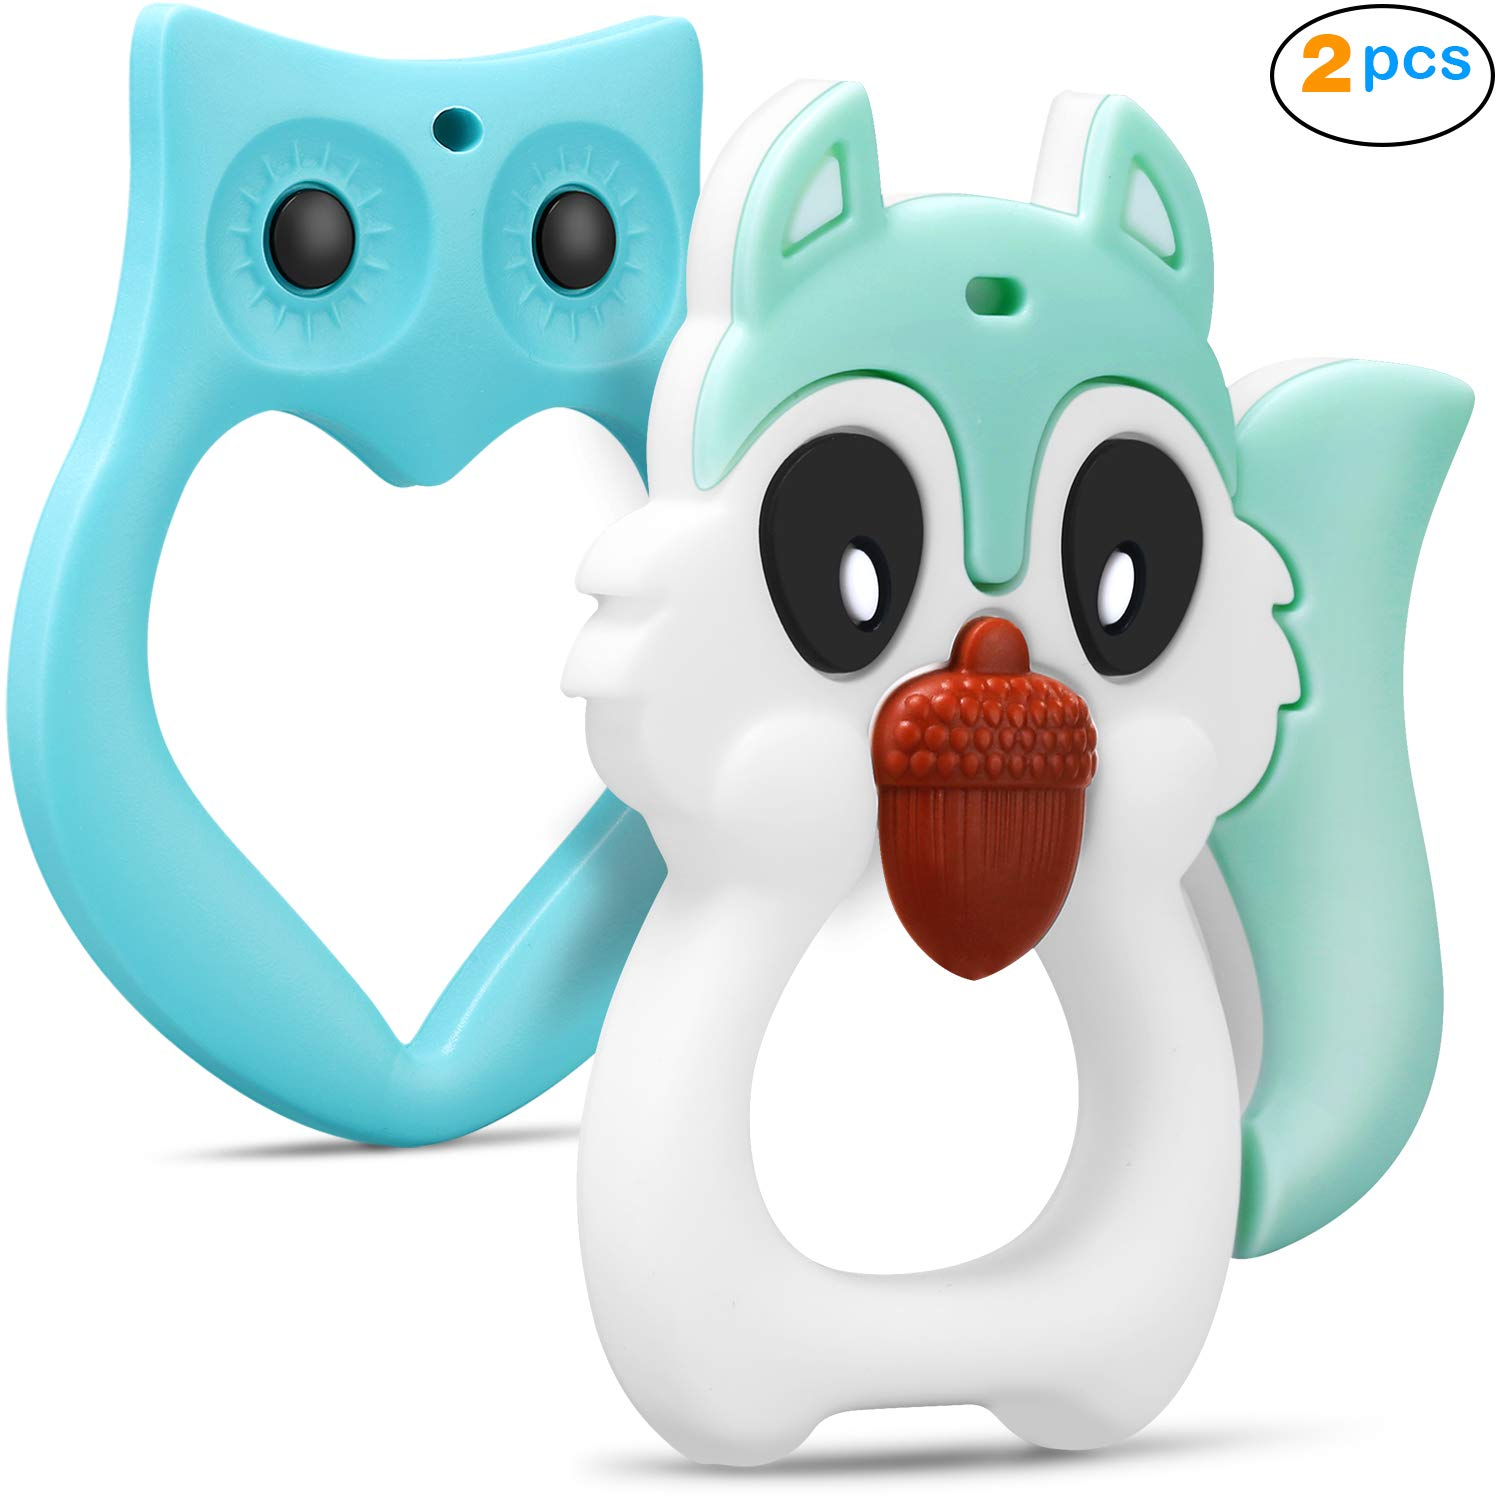 Baby Teething Toys Infant Toys Soft Silicone Natural FDA Approved Teethers for BPA Free 100% Silicone Relieves Baby Teething Itching Molar Toddler Toys Newborn Toys for 3-6 to 12 Months Vatarner